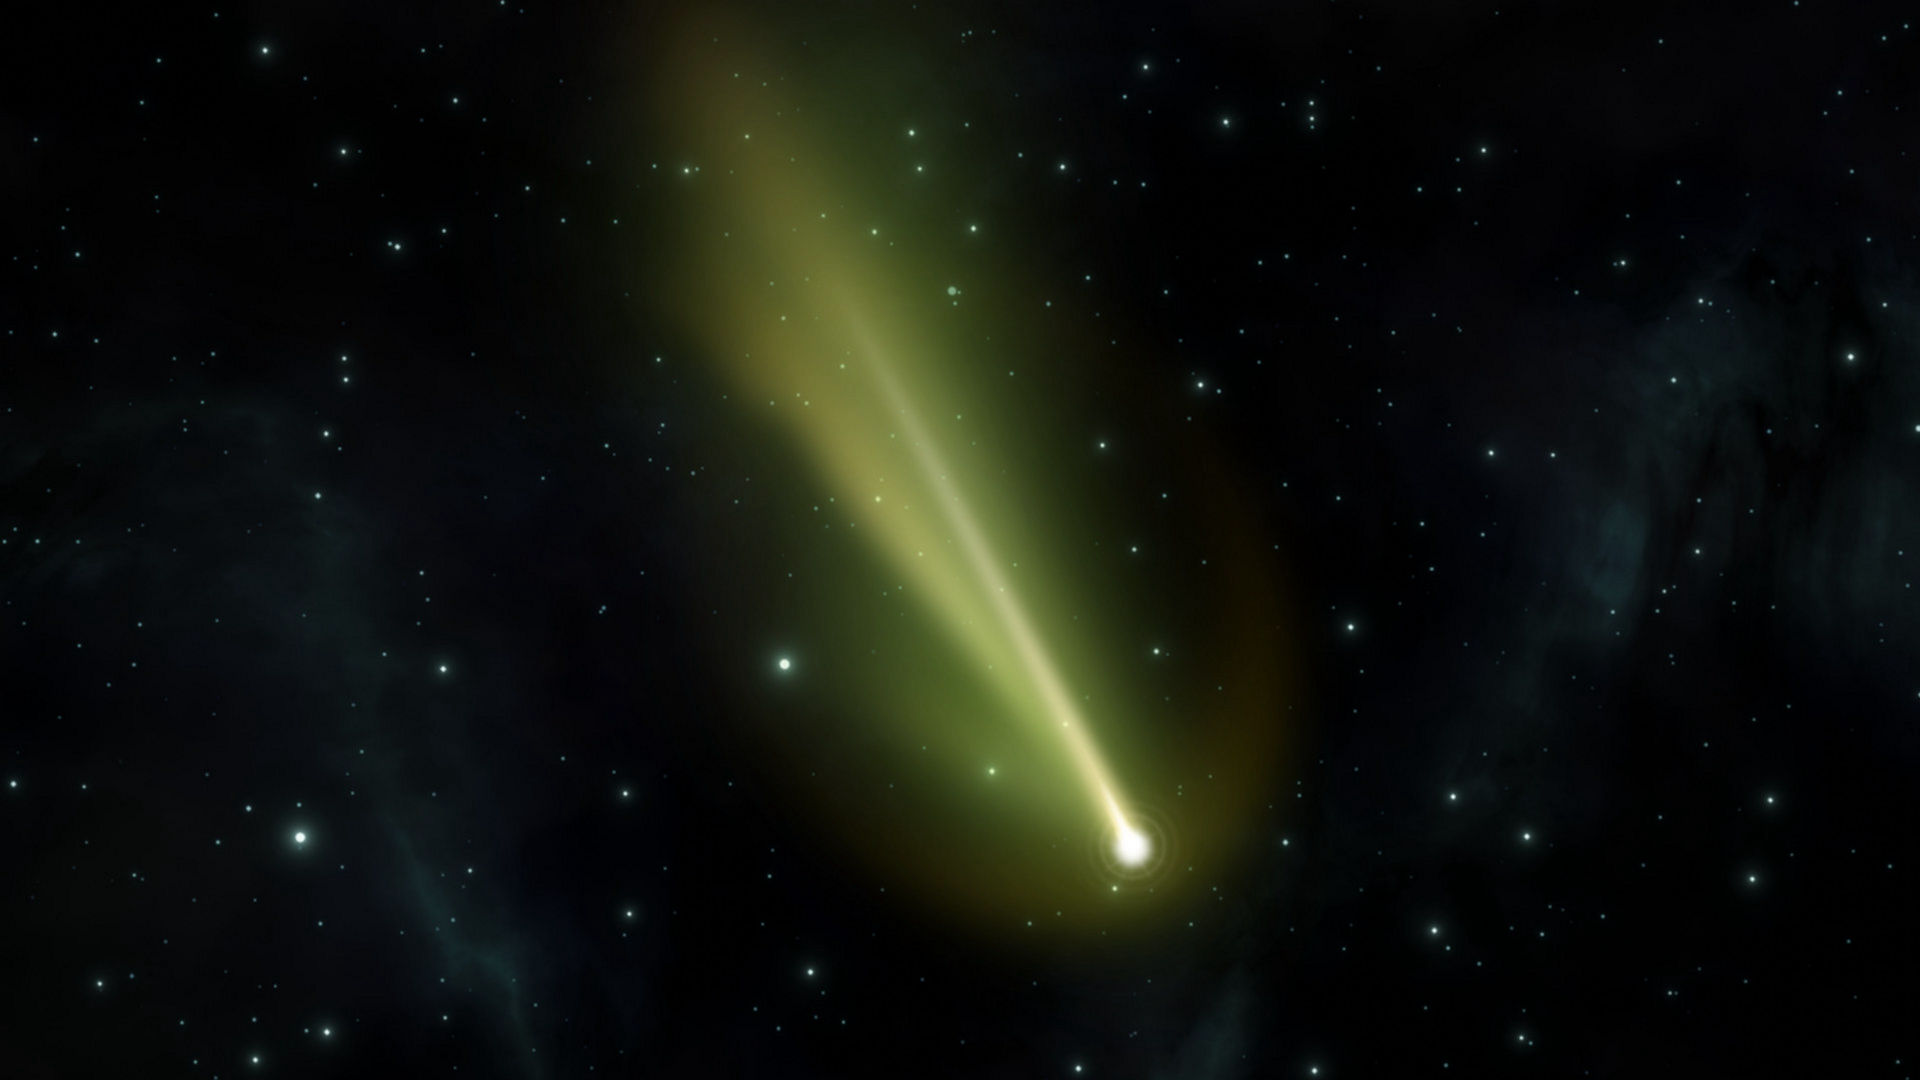 Meet the First Comet of 2021!